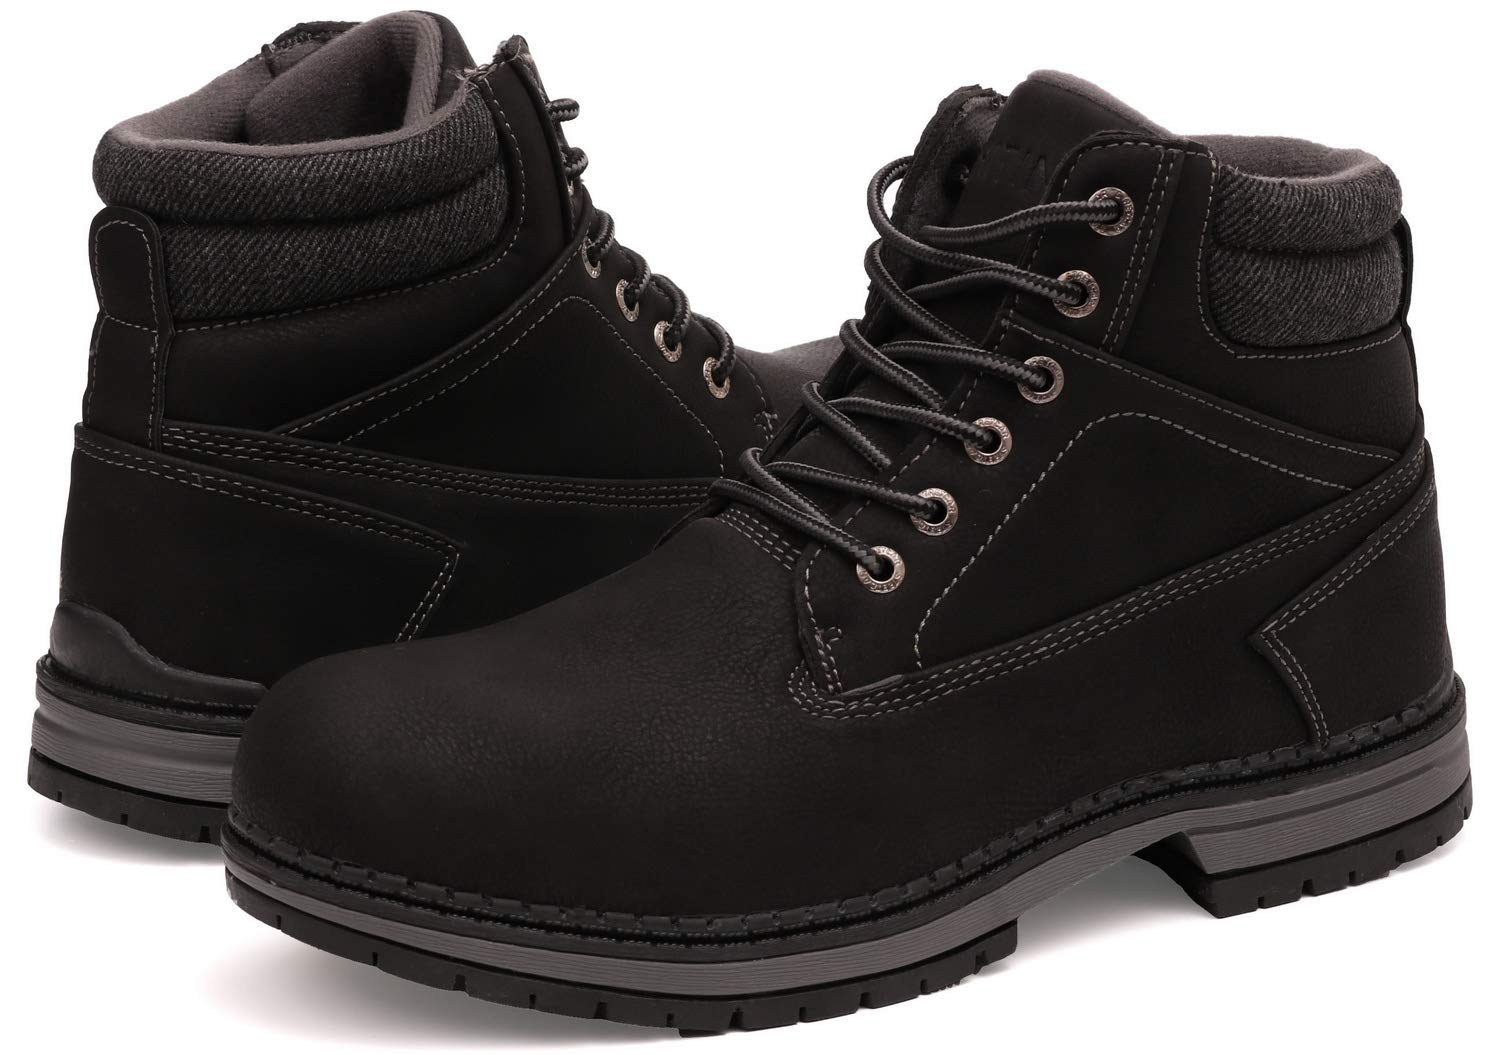 WHITIN Men's Mid Soft Toe Leather Insulated Work Boots Construction Rubber Sole Roofing Waterproof for Outdoor Hiking Winter Snow Extra Wide Width Non Slip Slip Resistant Nonslip Black Size 9.5 by WHITIN